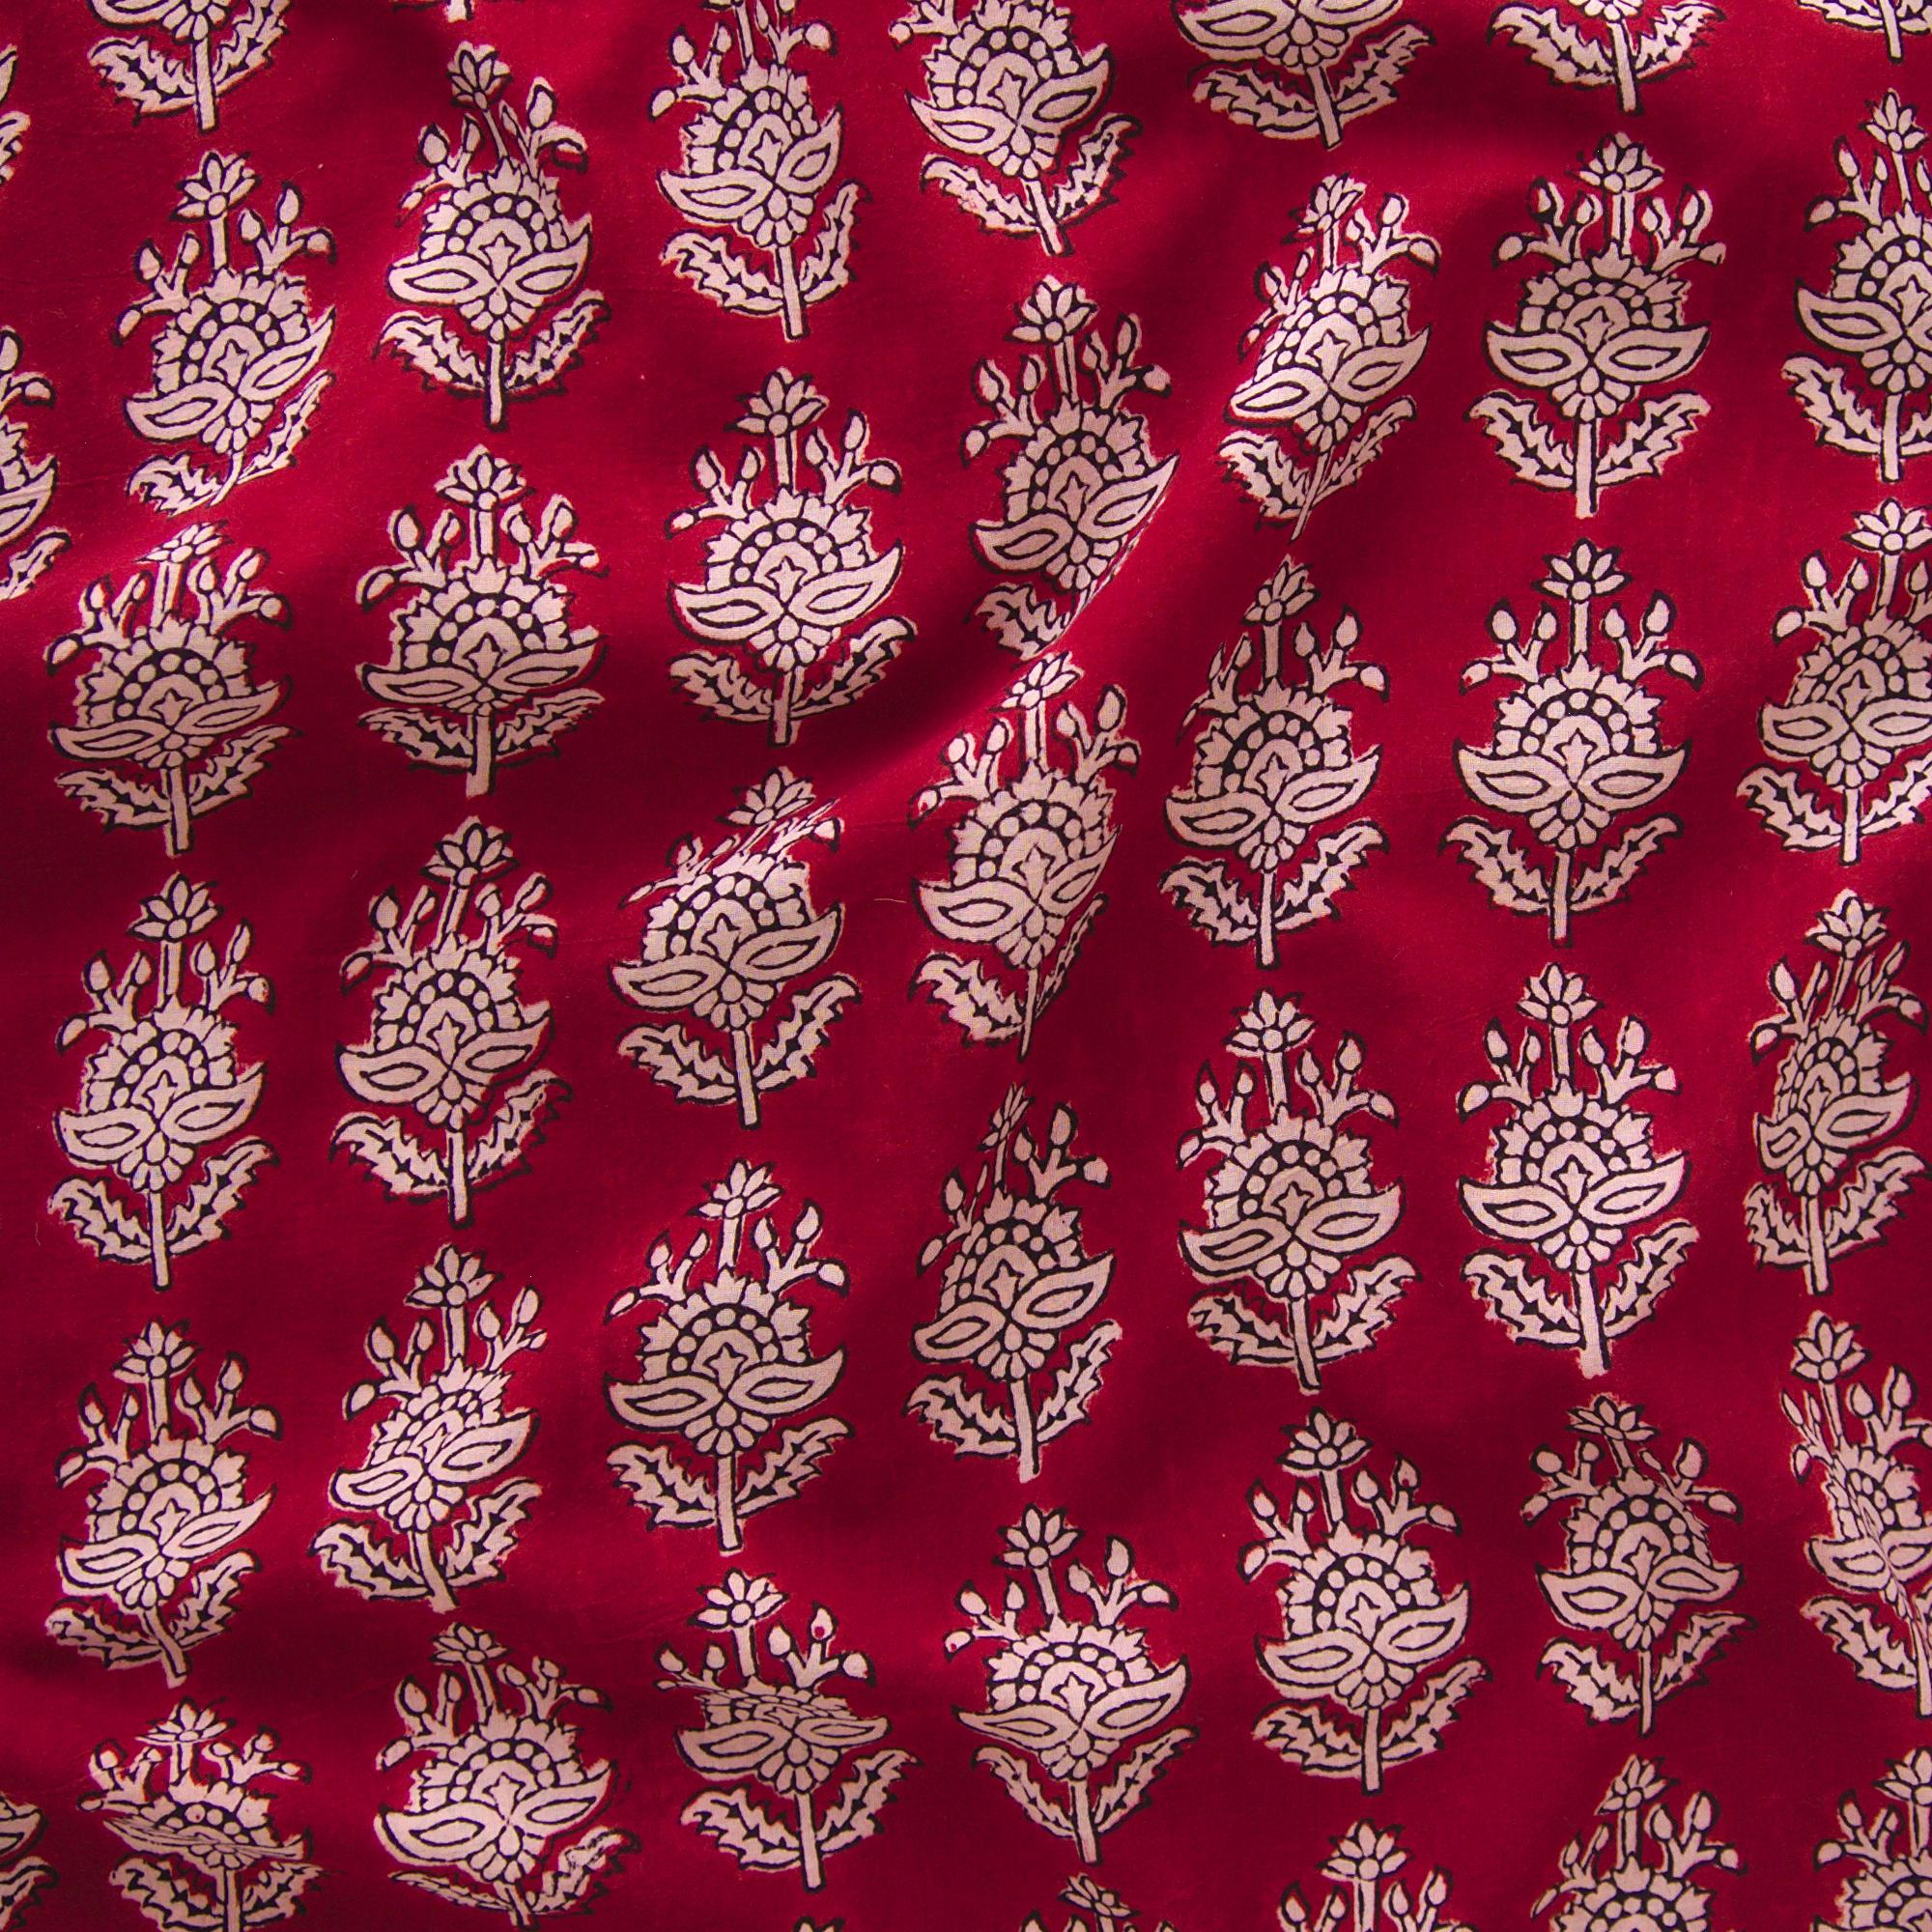 100% Block-Printed Cotton Fabric From India - Talkin' About Design - Iron Rust Black & Alizarin Red Dyes - Contrast - Live